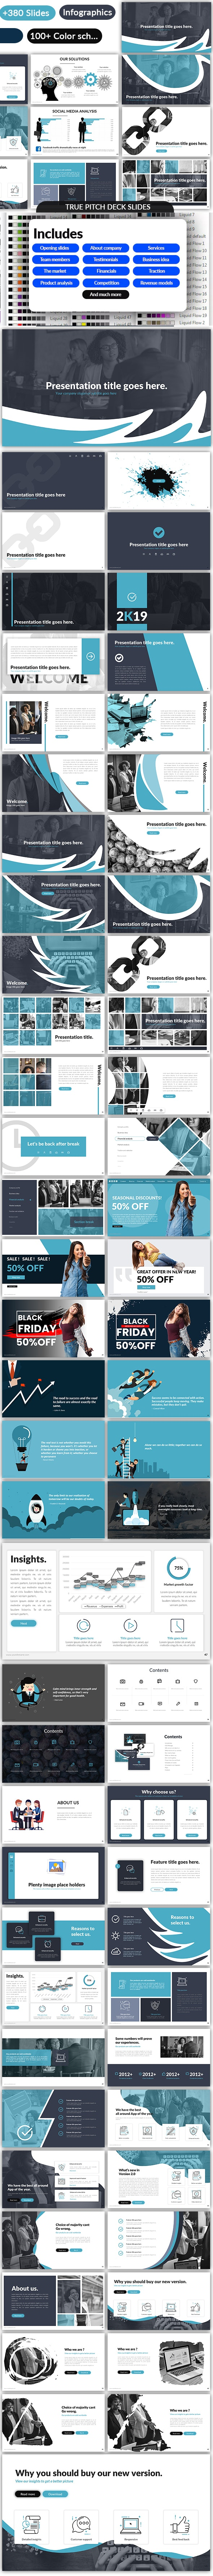 Patta - Pitch Deck Tool Kit - Business PowerPoint Templates